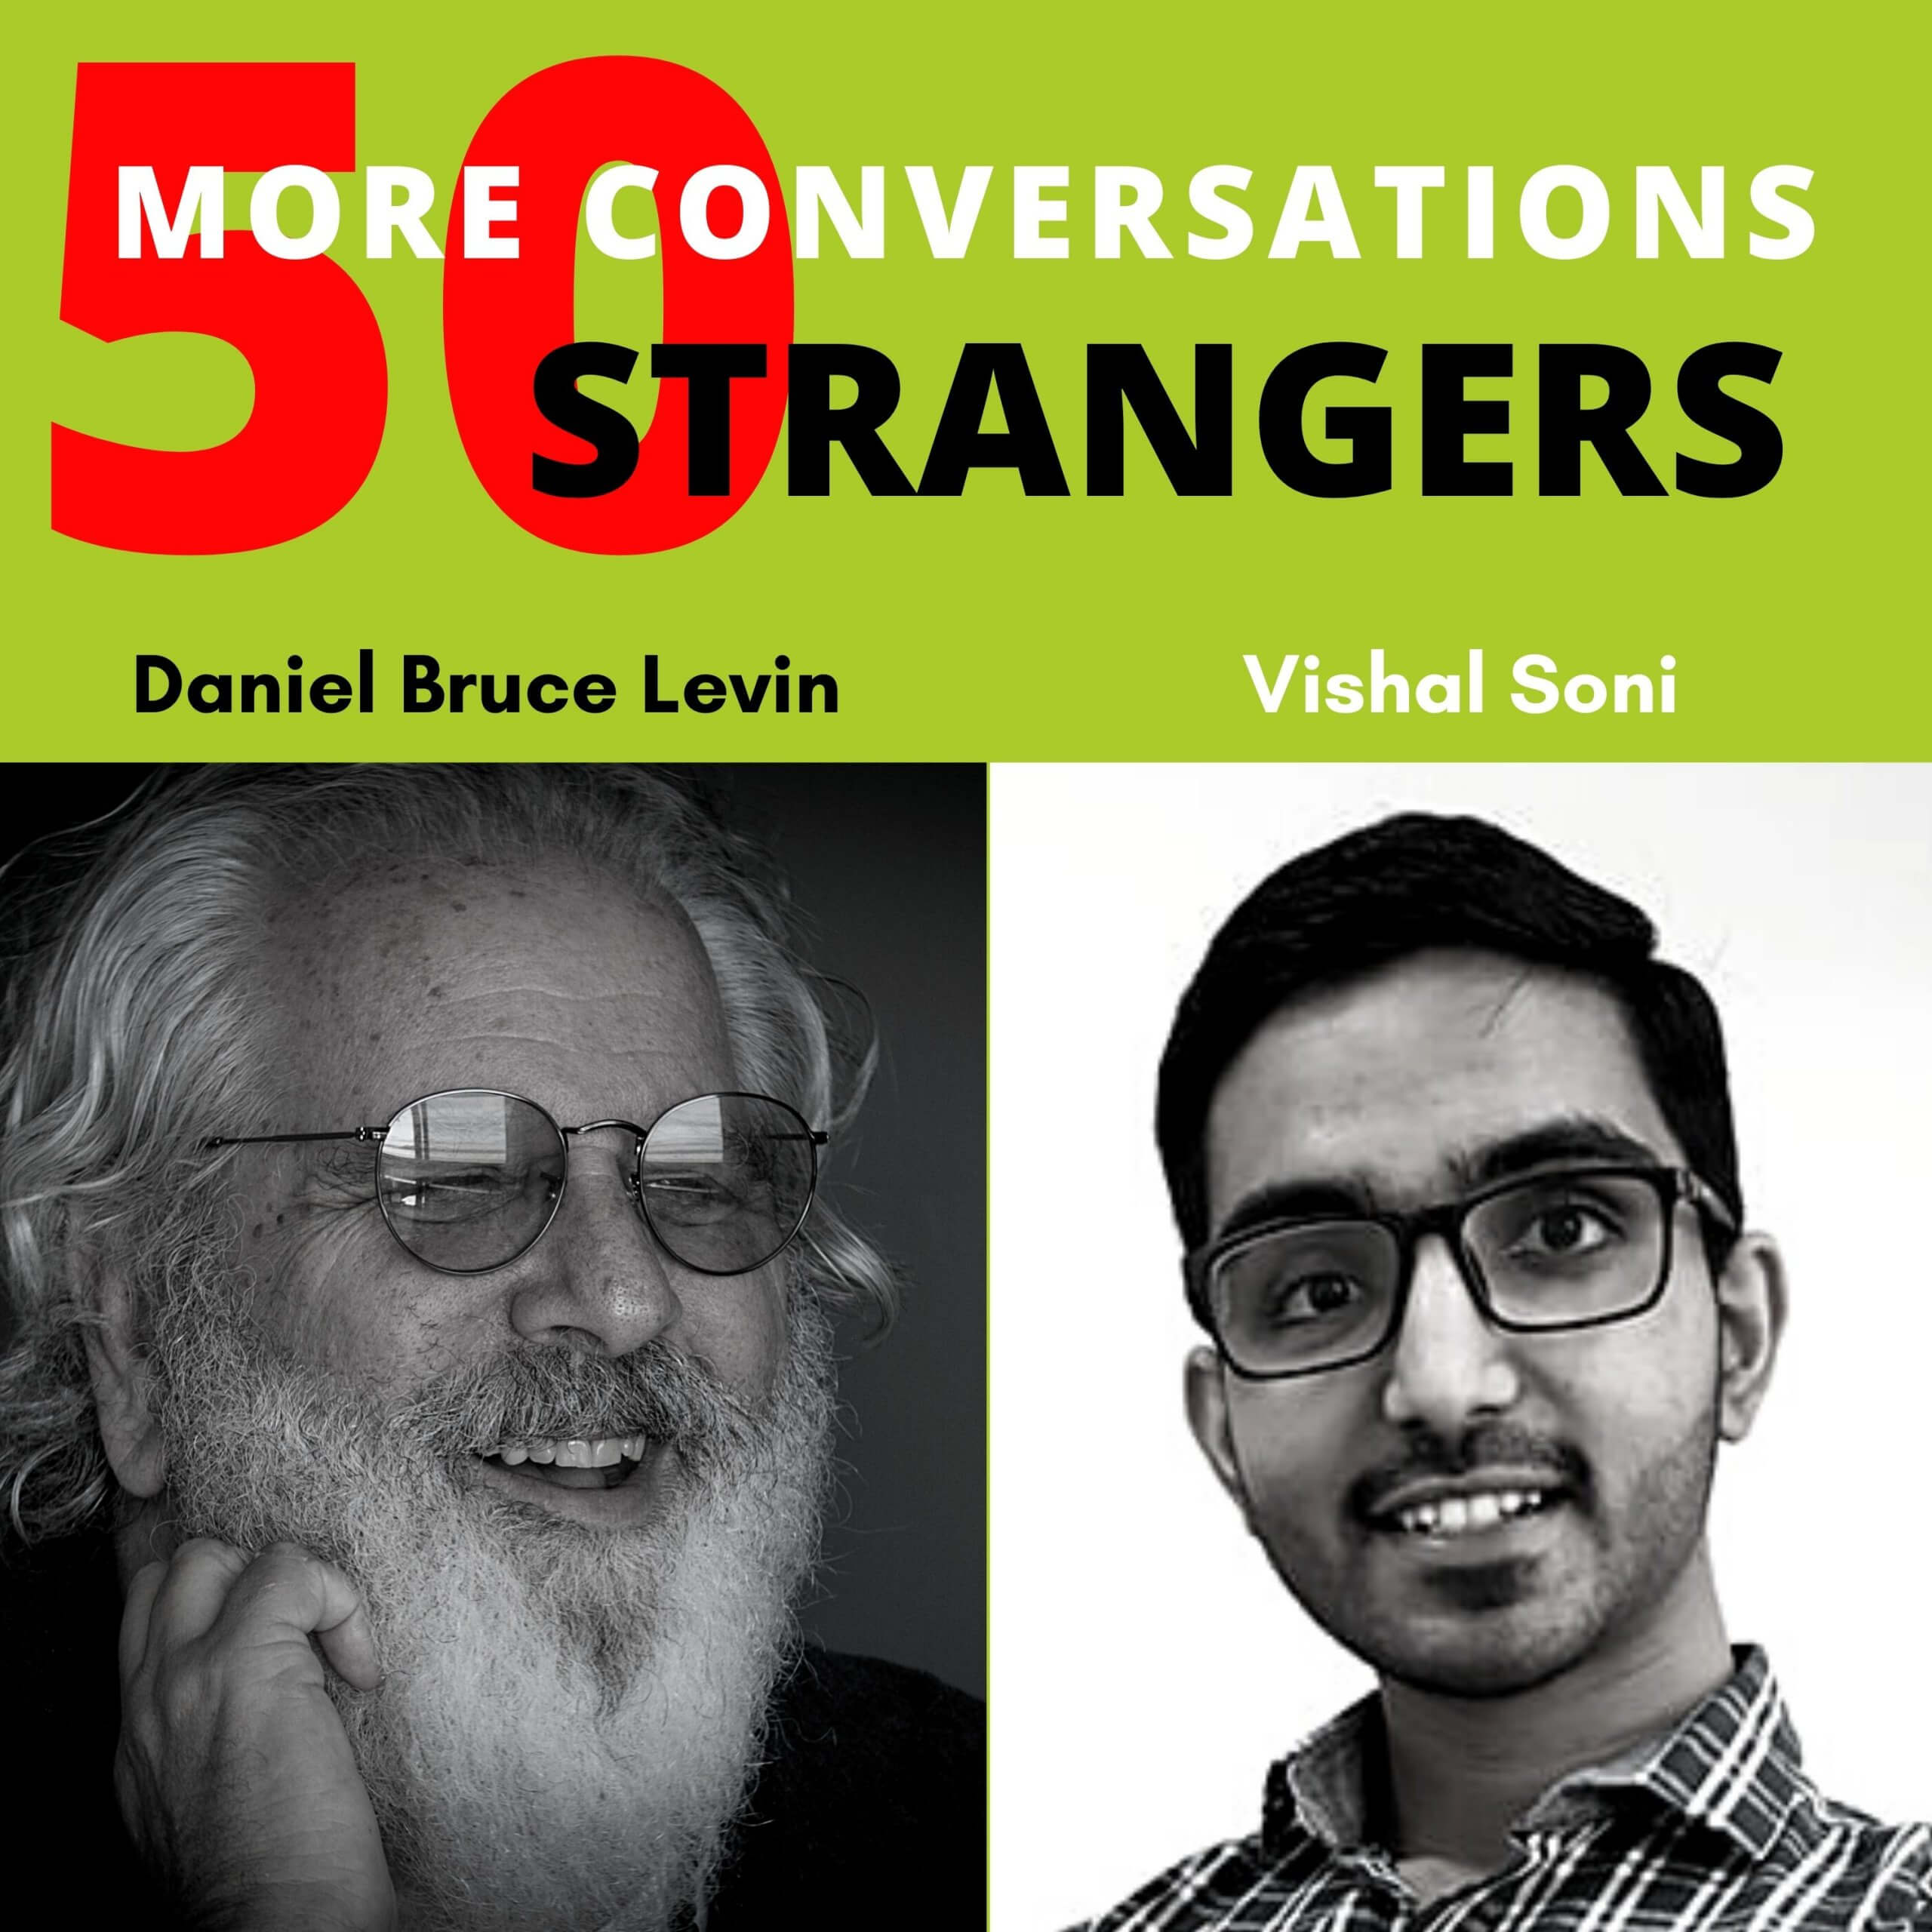 50 More Conversations with 50 More Strangers with Vishal Soni